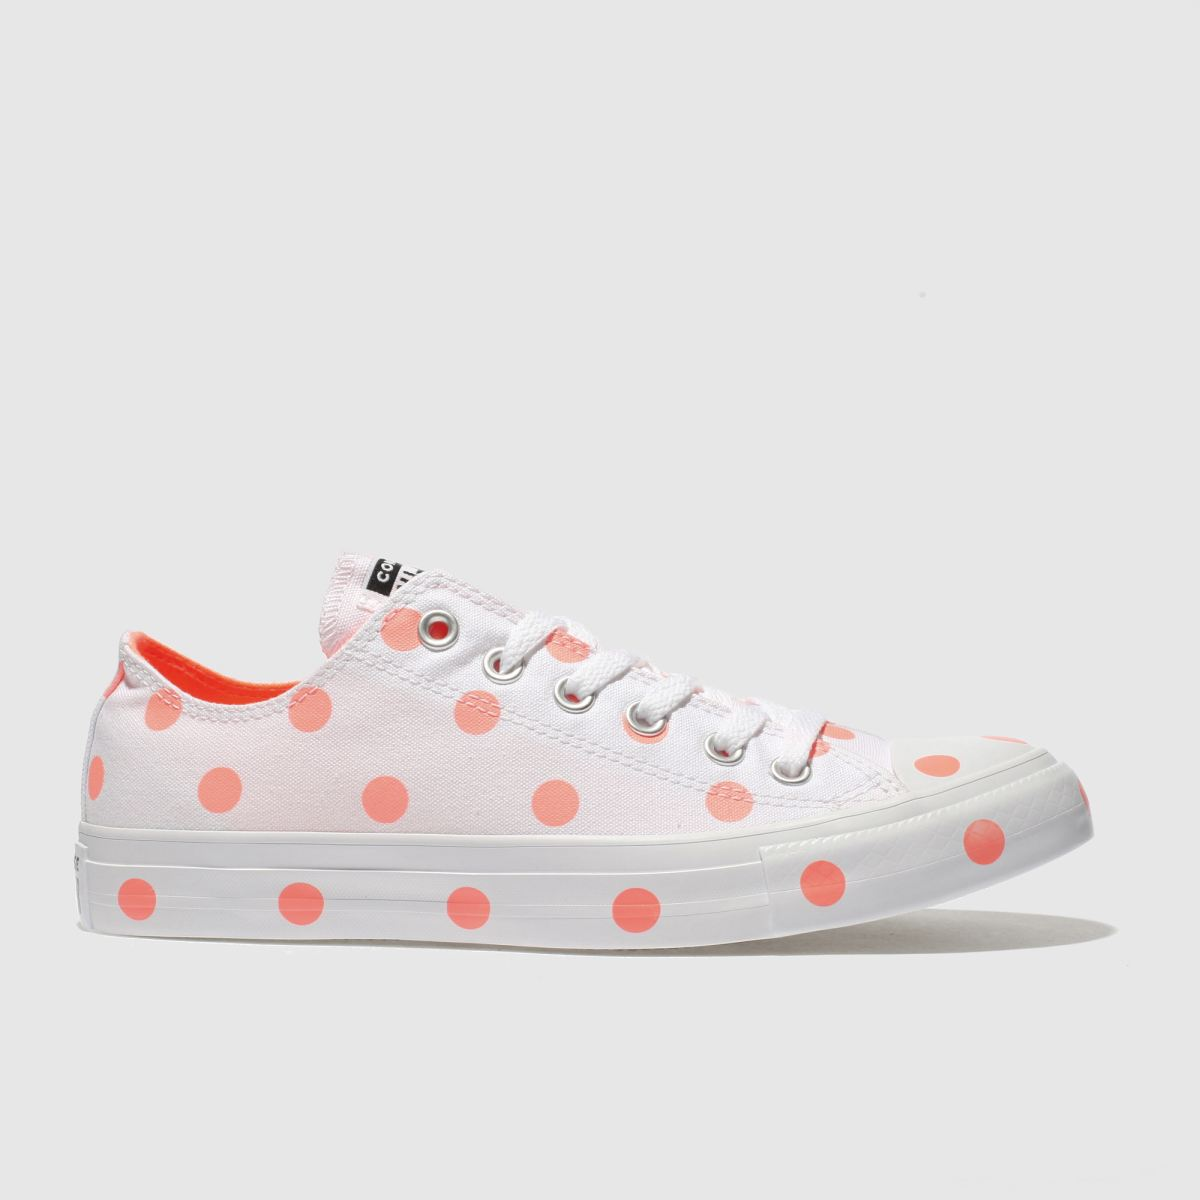 Converse White & Orange All Star Polka Dot Ox Trainers